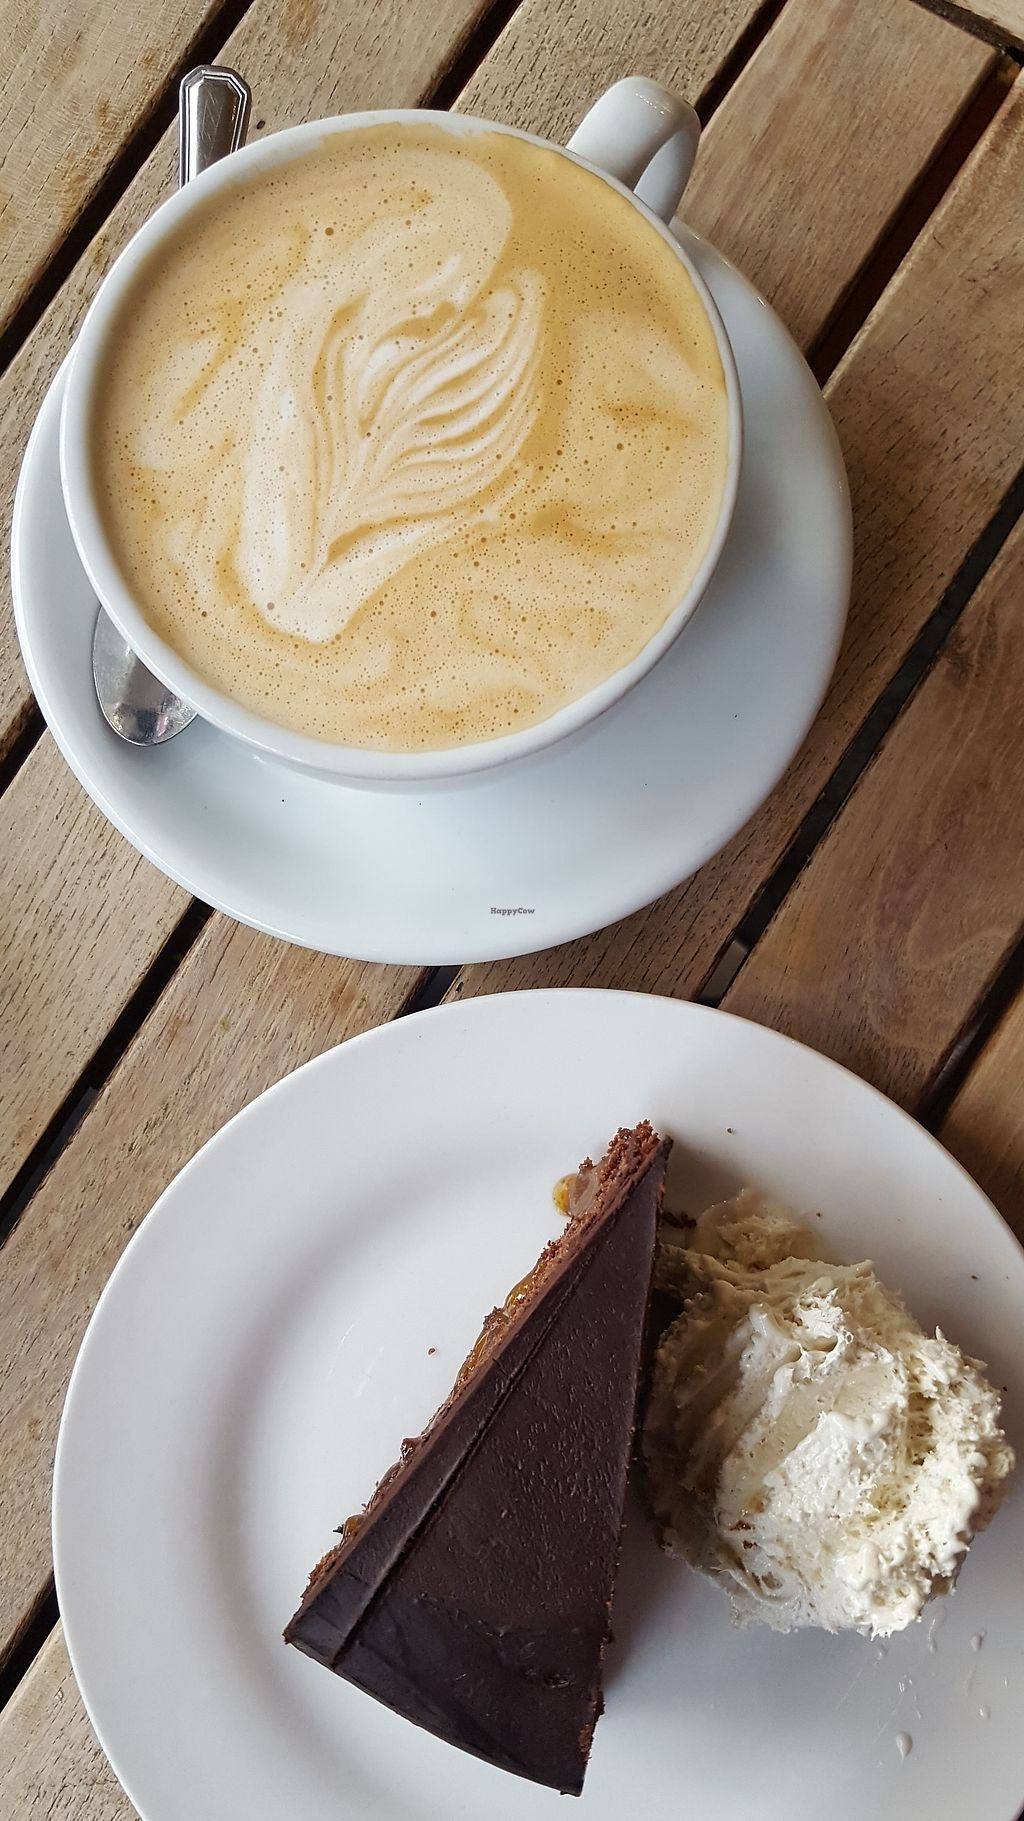 "Photo of Moreish Cafe Deli  by <a href=""/members/profile/VeganAnnaS"">VeganAnnaS</a> <br/>Vegan cake with homemade icecream <br/> December 23, 2017  - <a href='/contact/abuse/image/106829/338480'>Report</a>"